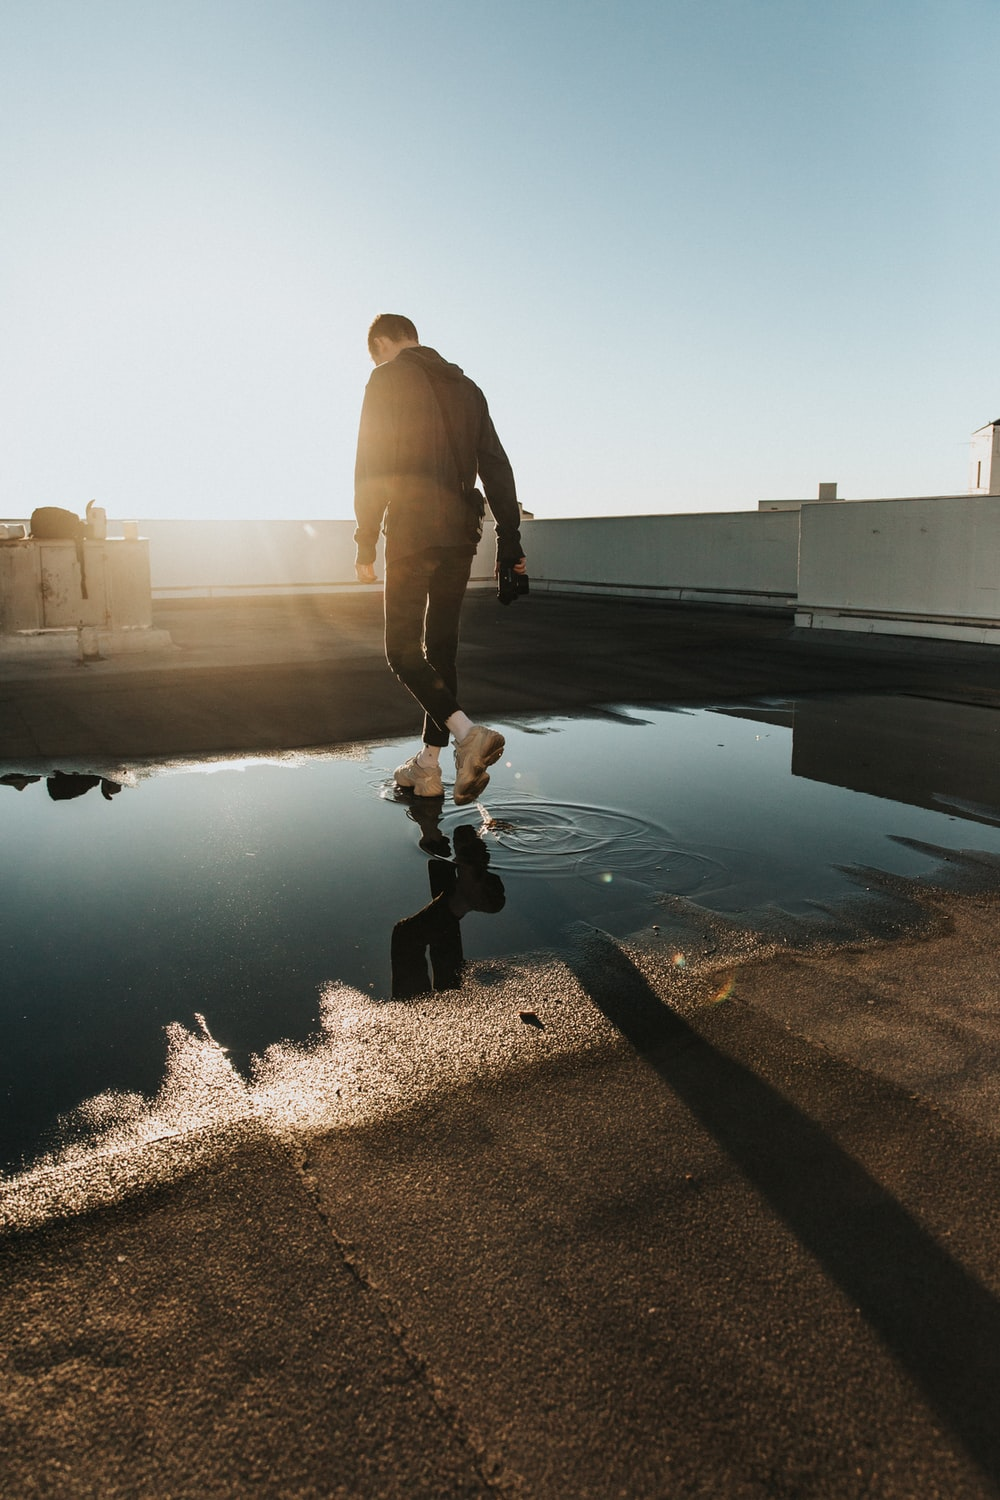 man walking on water puddle